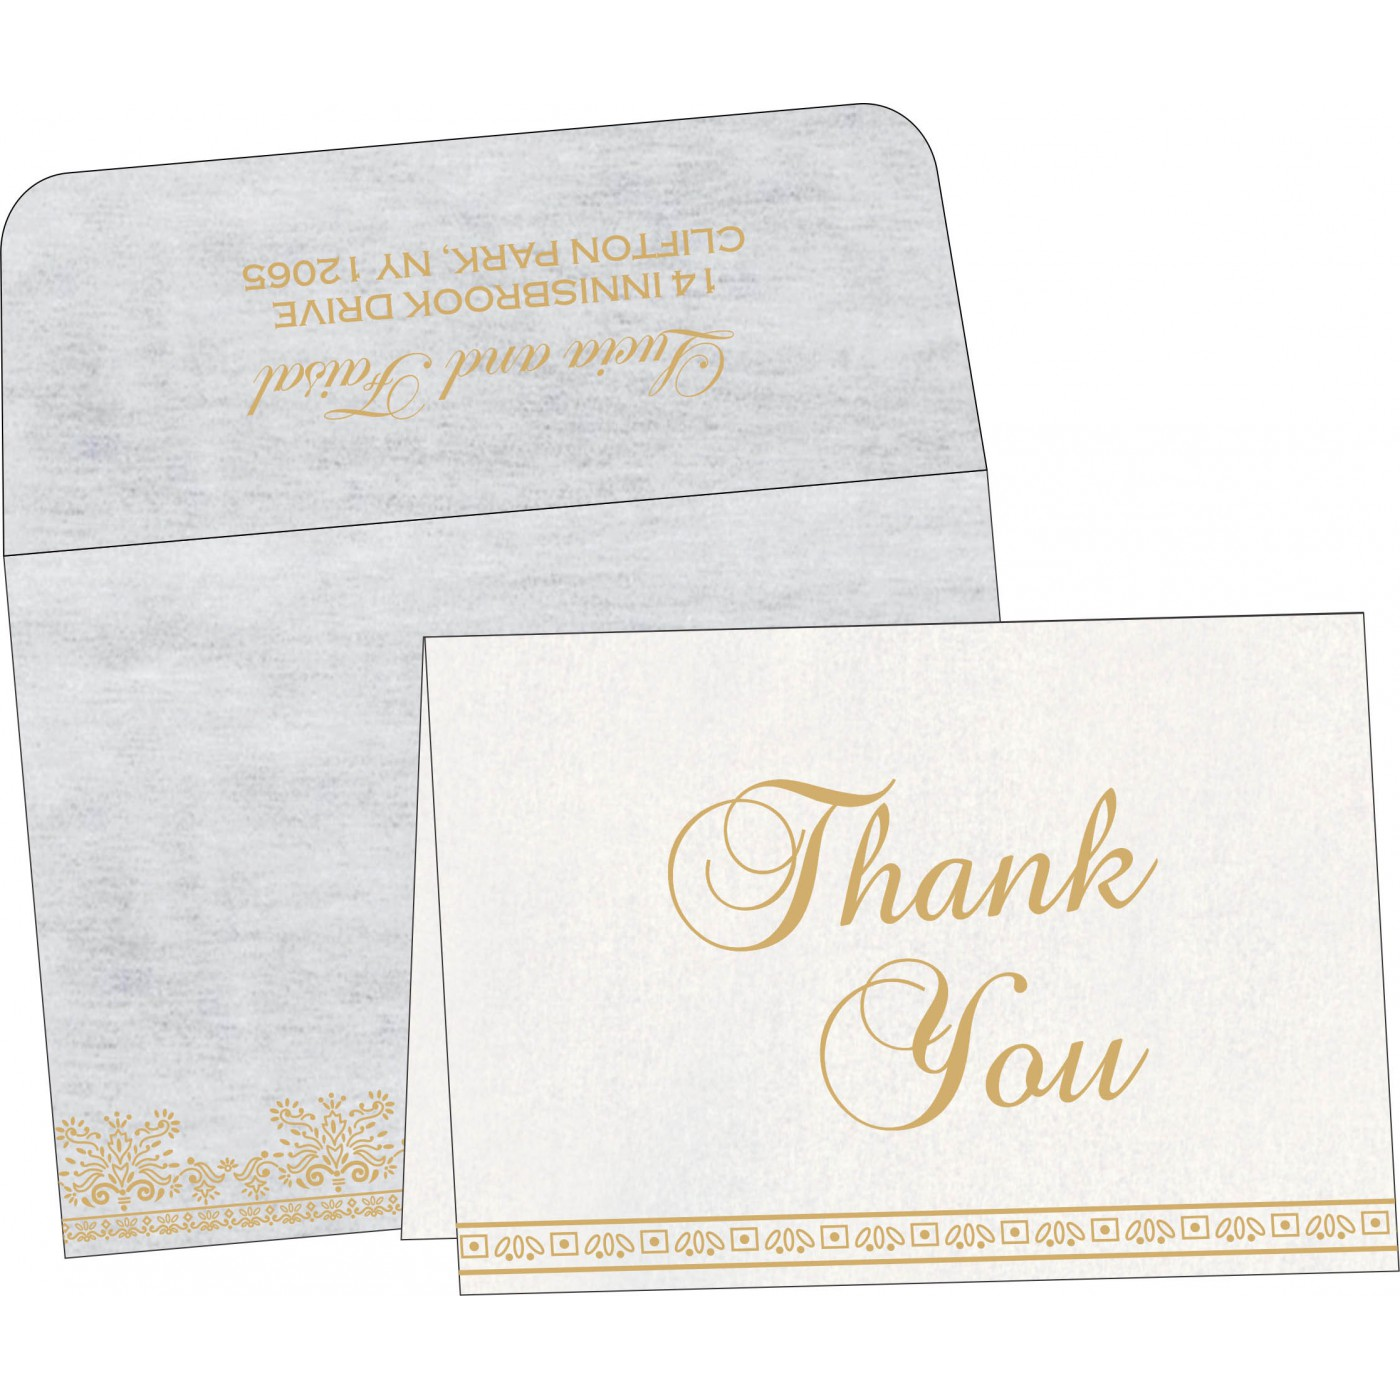 Thank You Cards - TYC-8241A